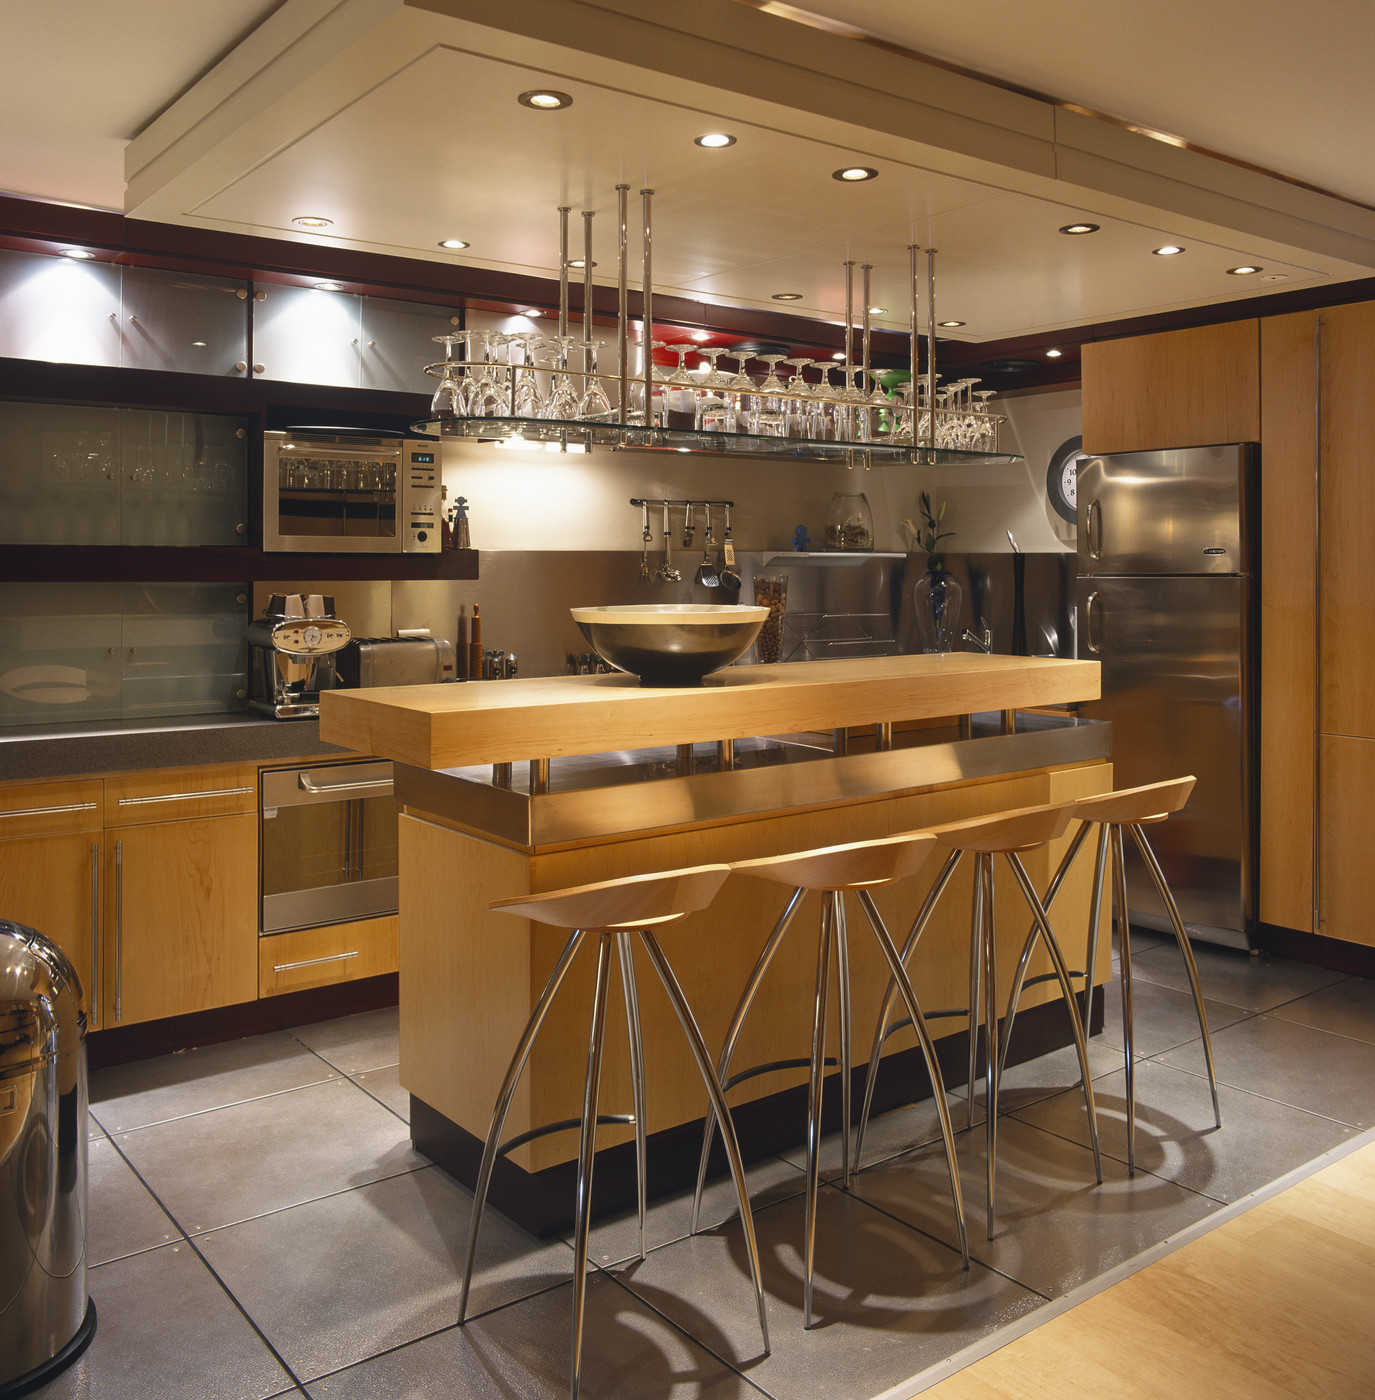 Contemporary Kitchen Vs Modern Kitchen: Brown Modern-Contemporary Kitchen